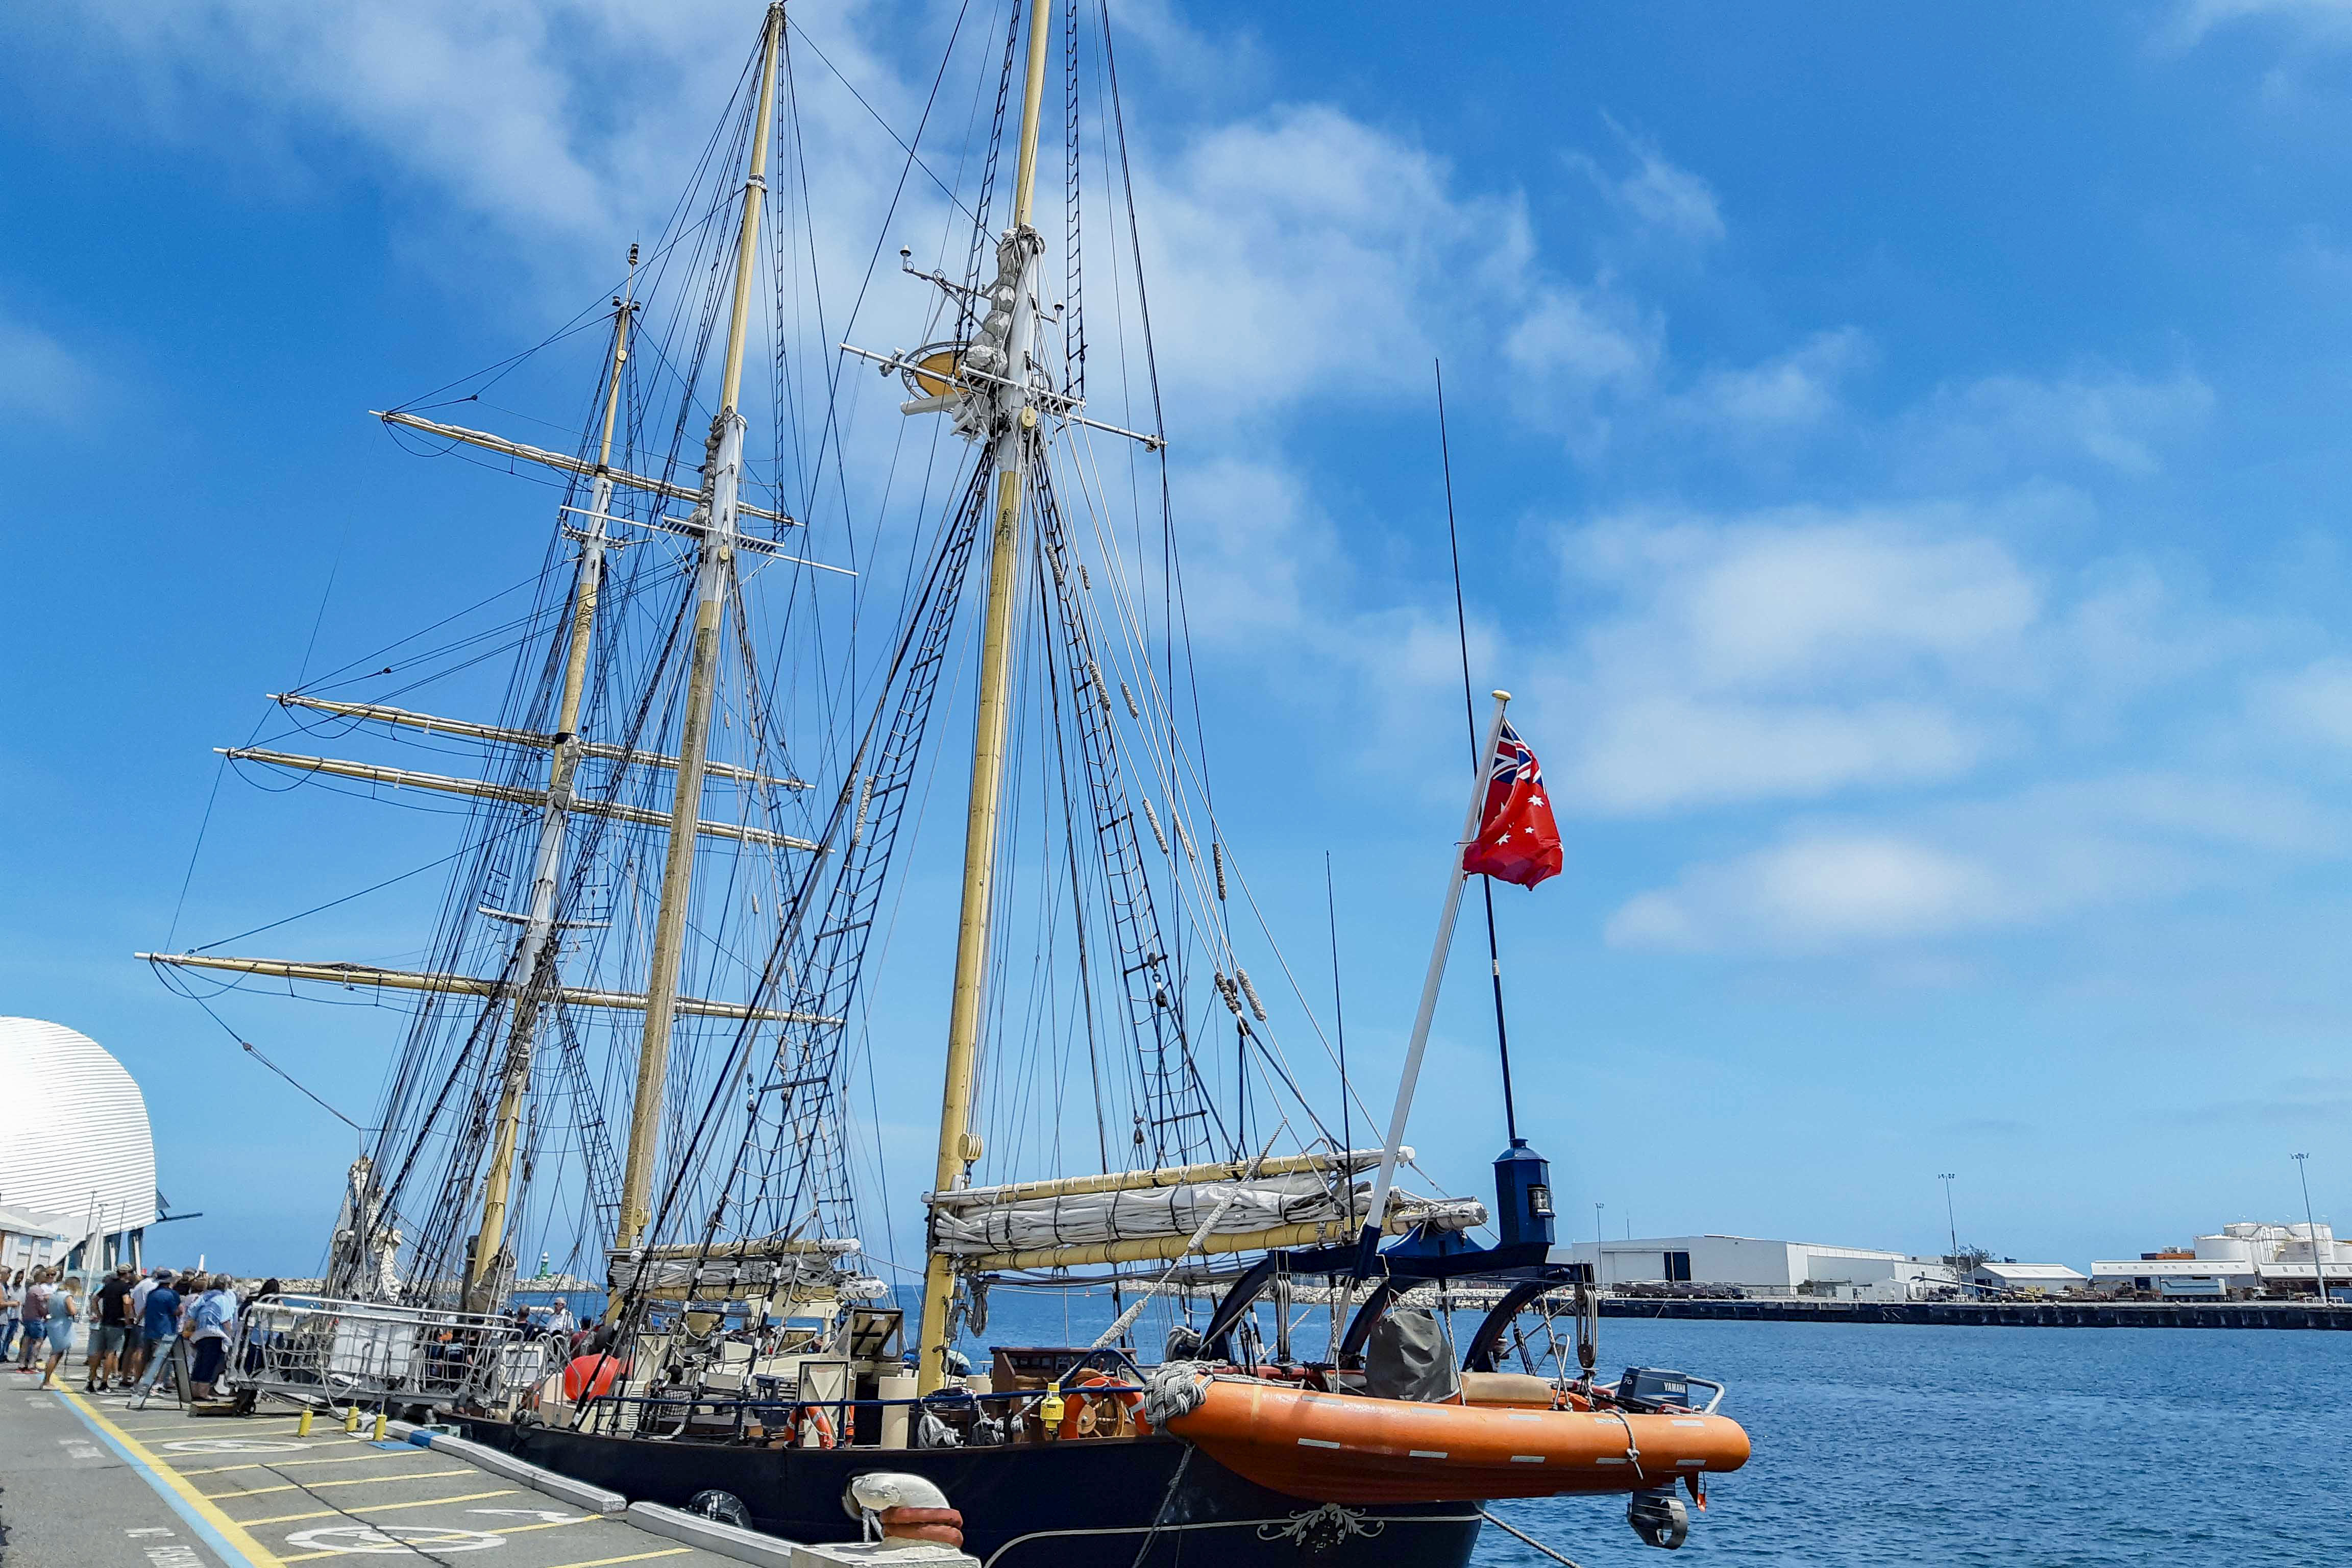 Identitywa recipient Chris took part in a five-day Ultimate Challenge voyage on a tall-ship. Photo: Identitywa.